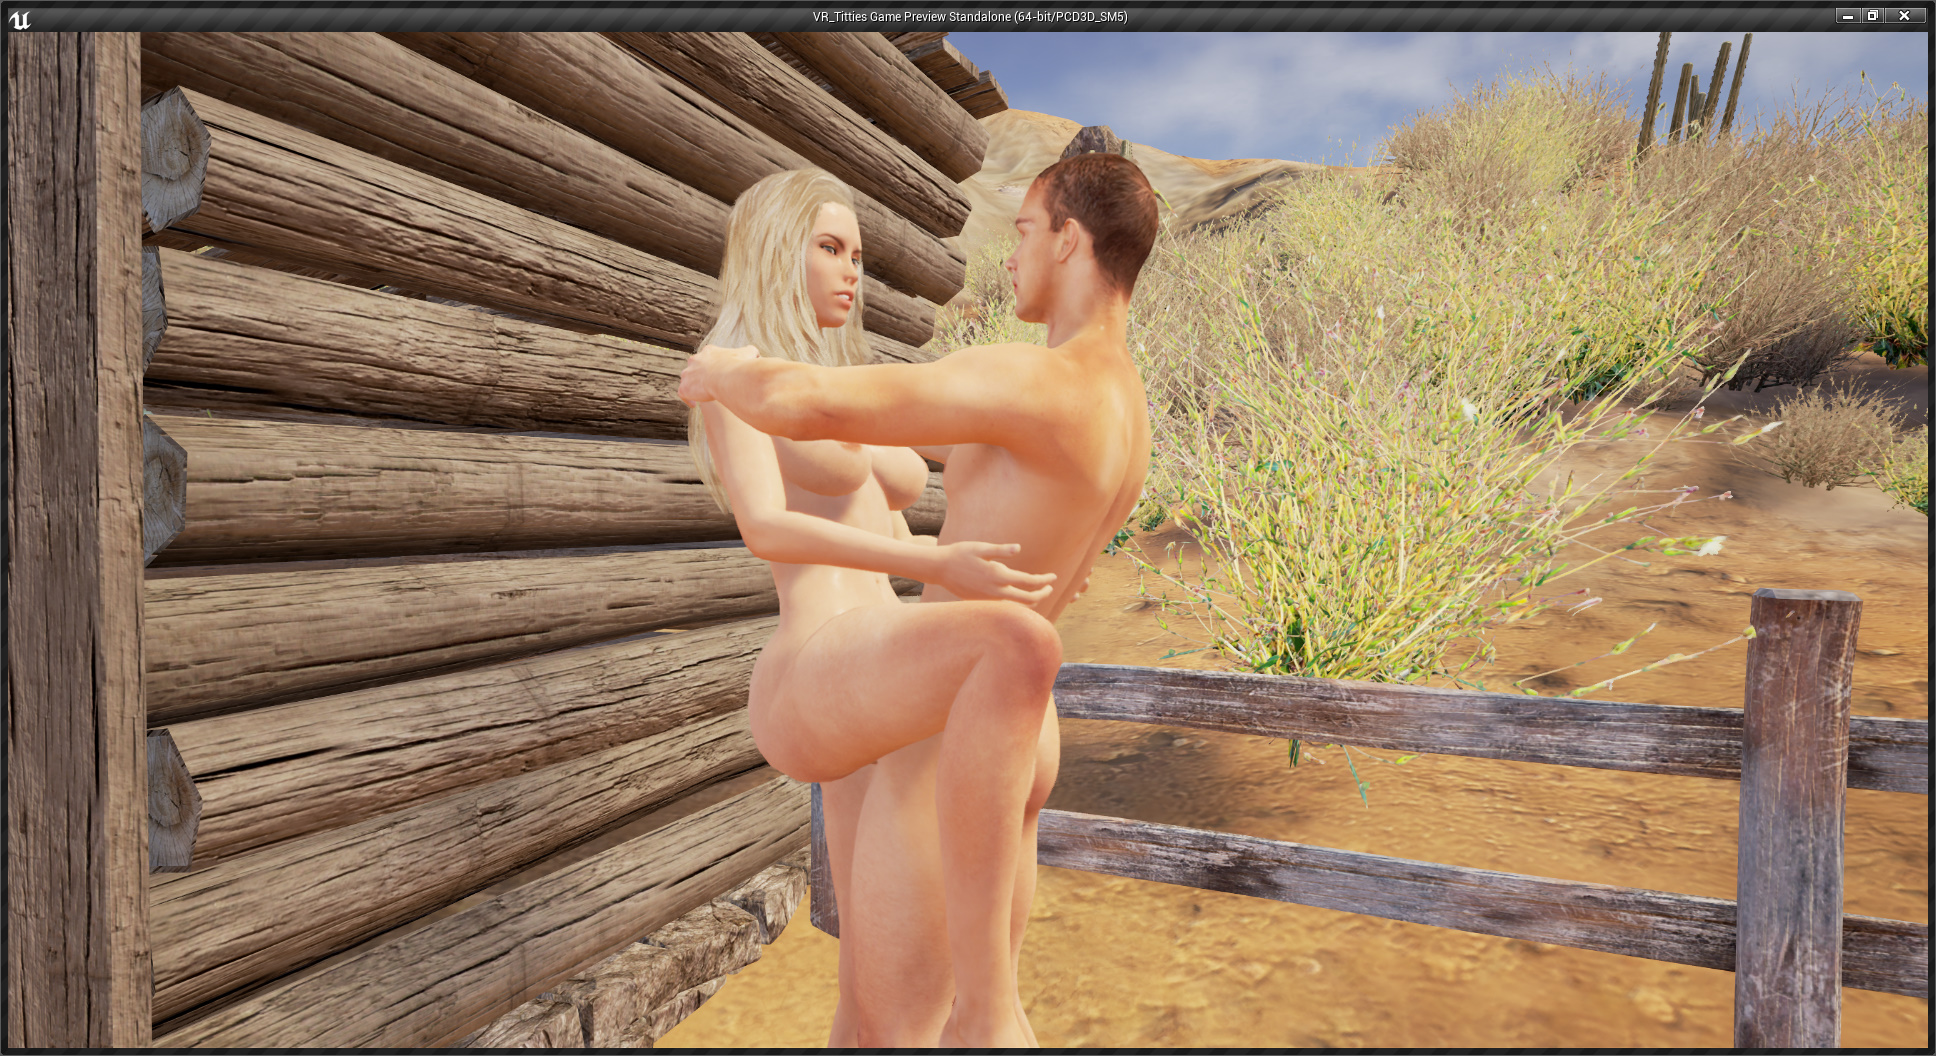 Hot Sex Games For Couples